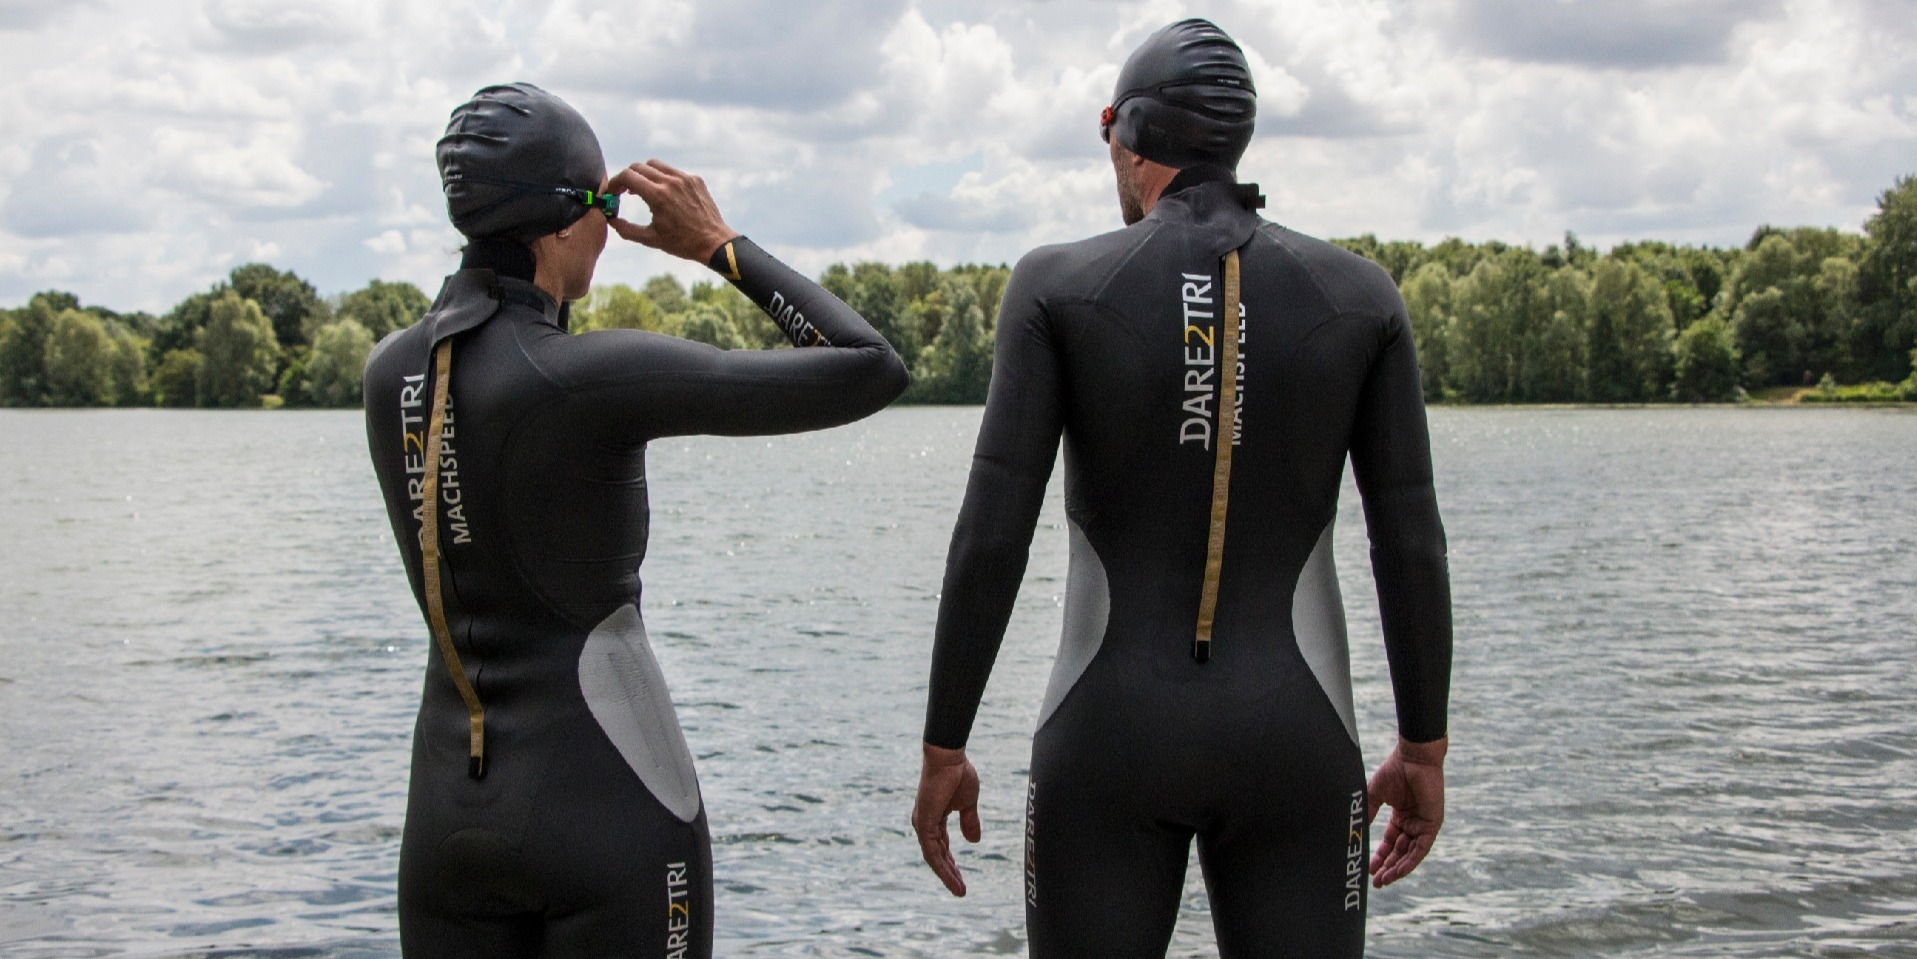 Triathlon For Beginners: How Do I Stay Safe While Training?